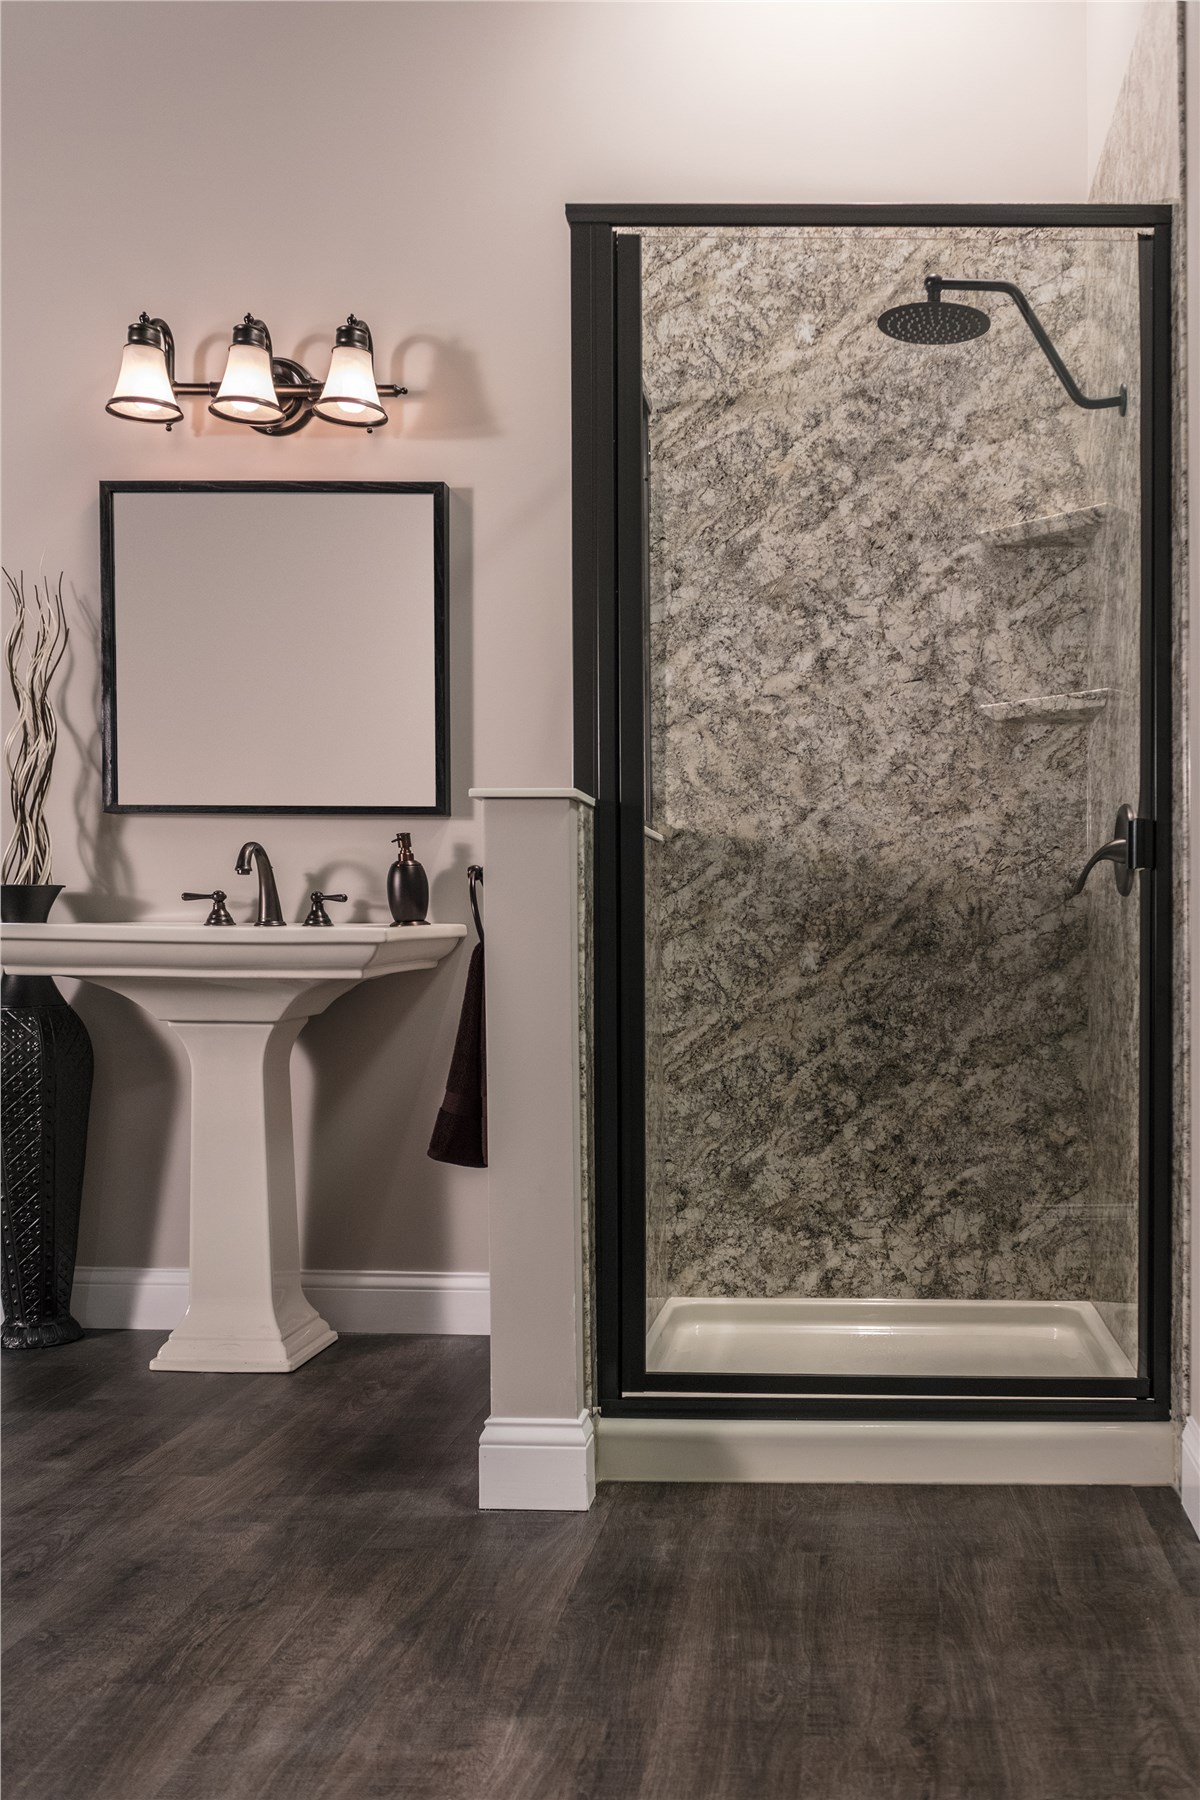 Shower Renovation shower remodel | shower renovation | remodel shower | luxury bath